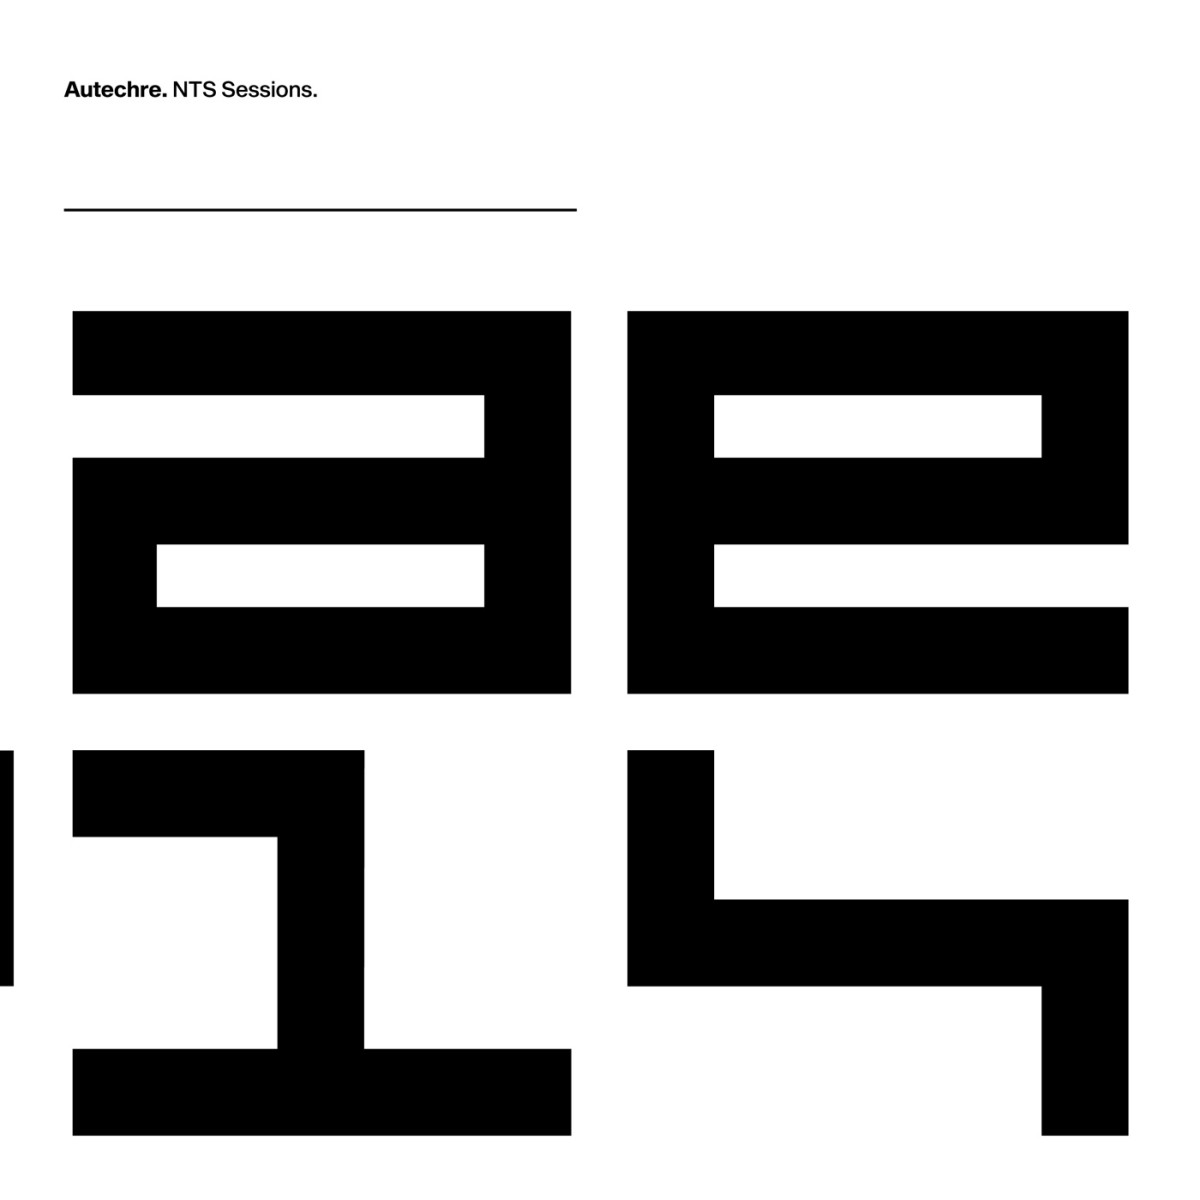 Autechre new box set NTS Sessions